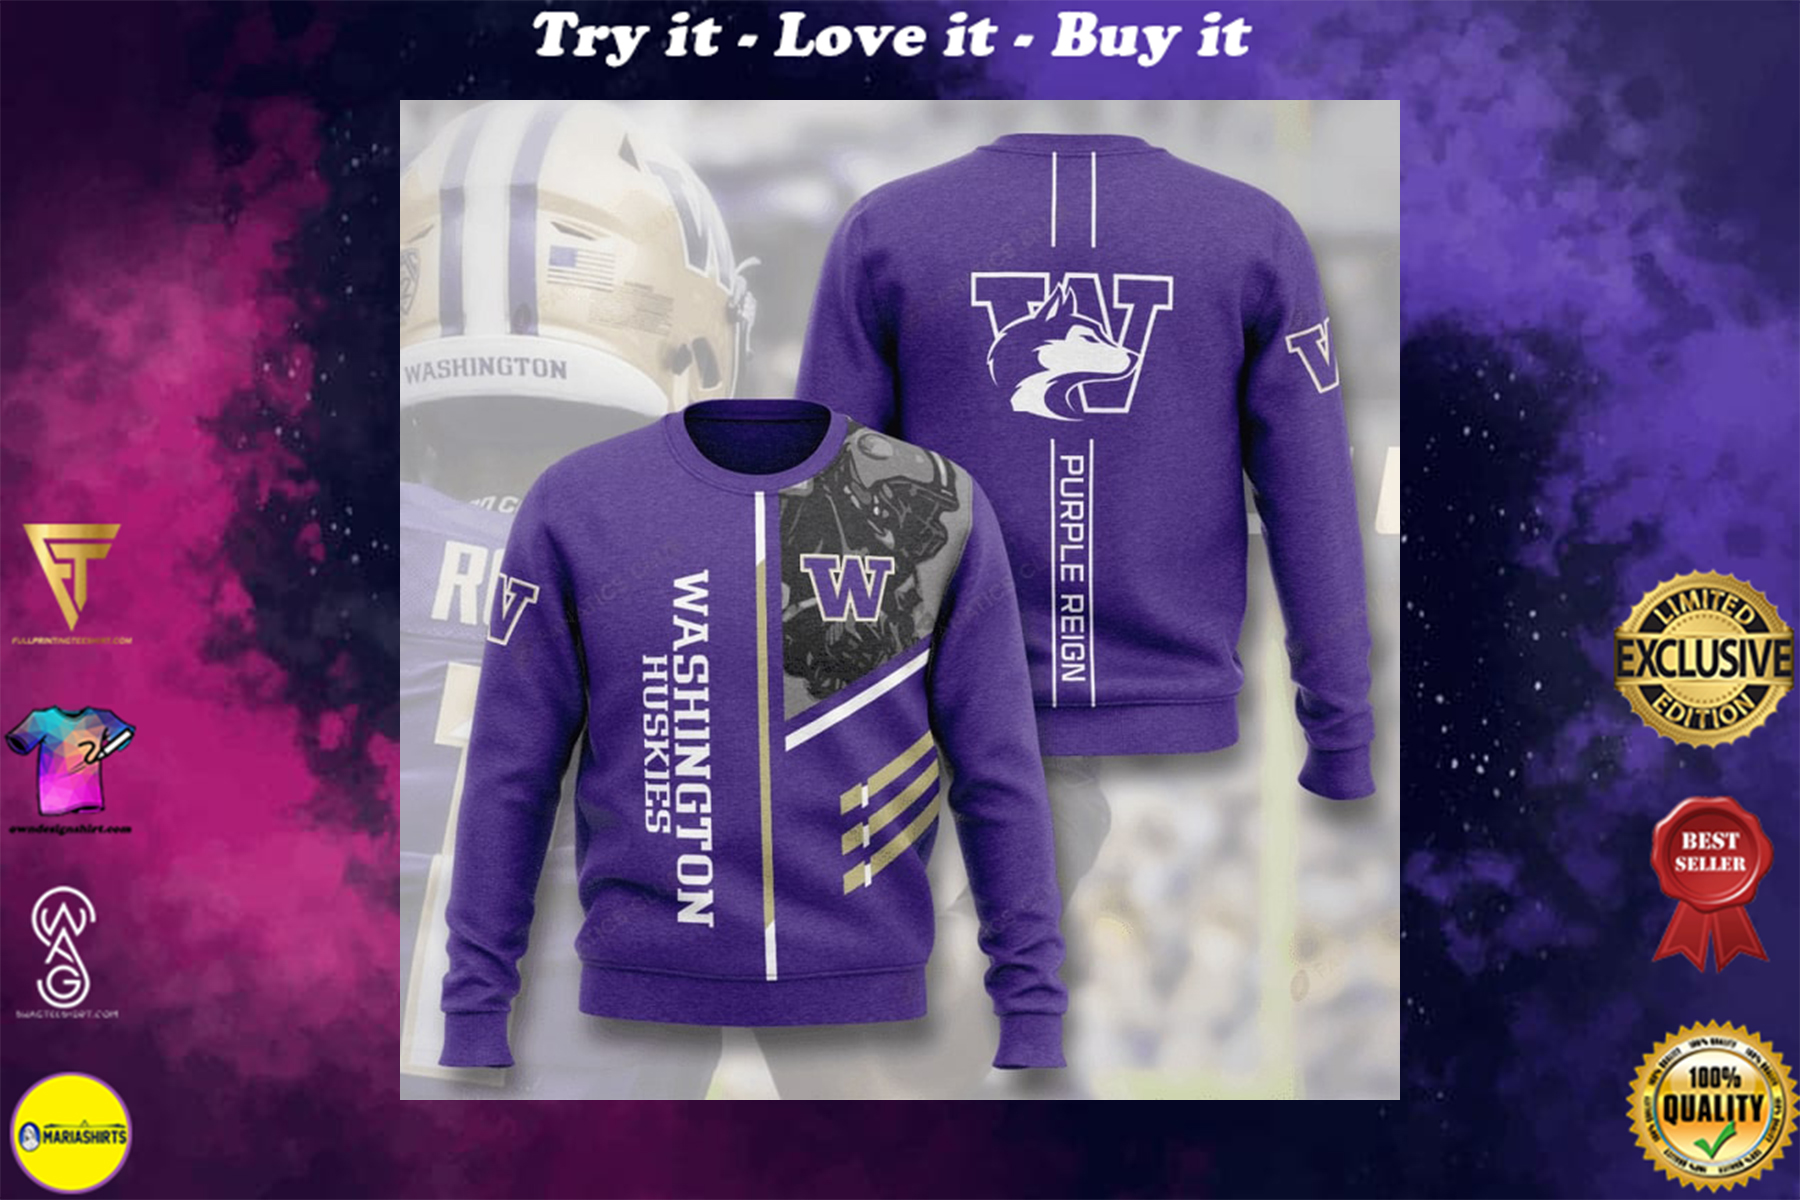 [special edition] washington huskies football purple reign full printing ugly sweater - maria